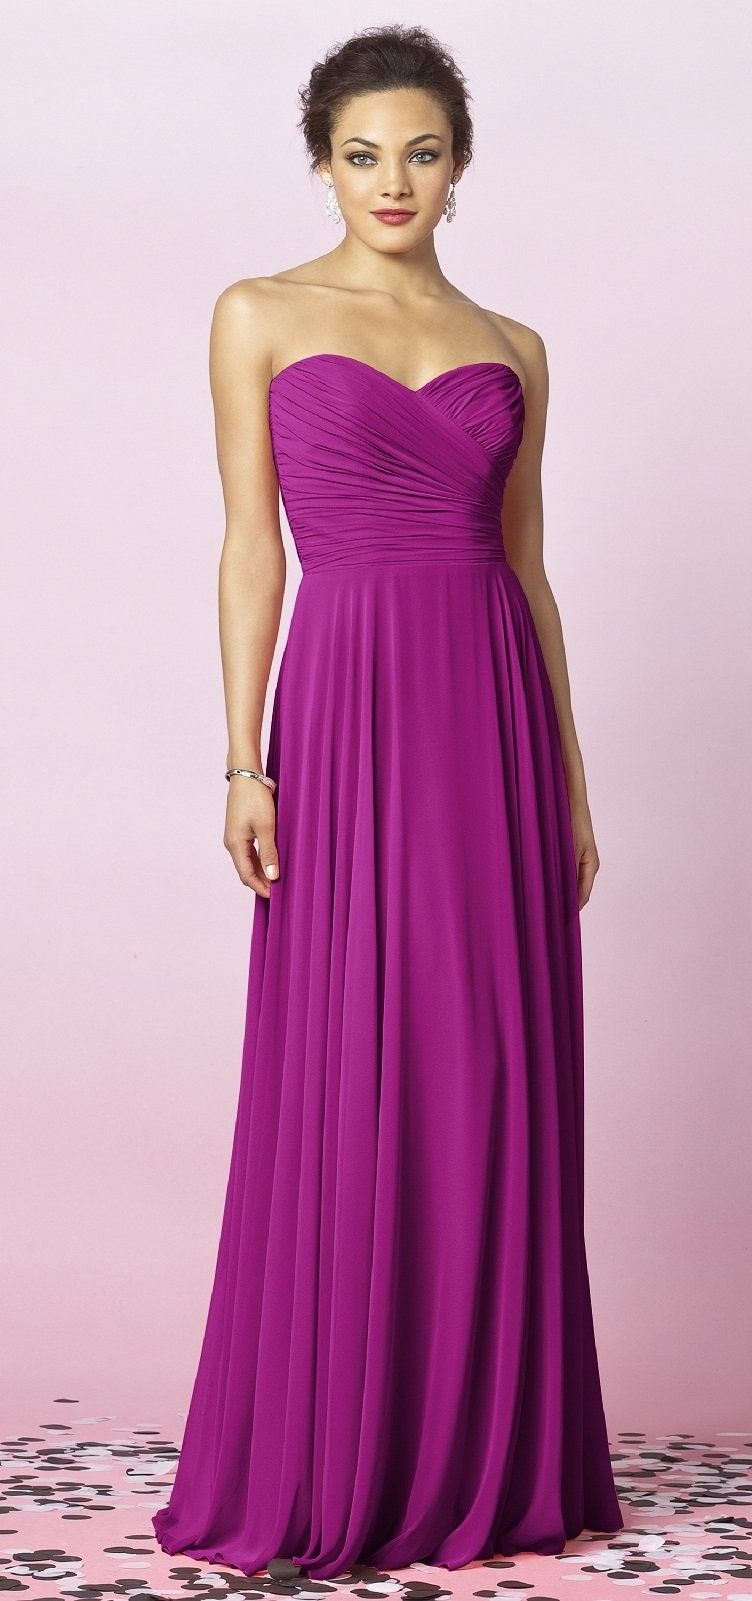 After Six Bridesmaids Style 6639 | Magenta bridesmaid dresses ...